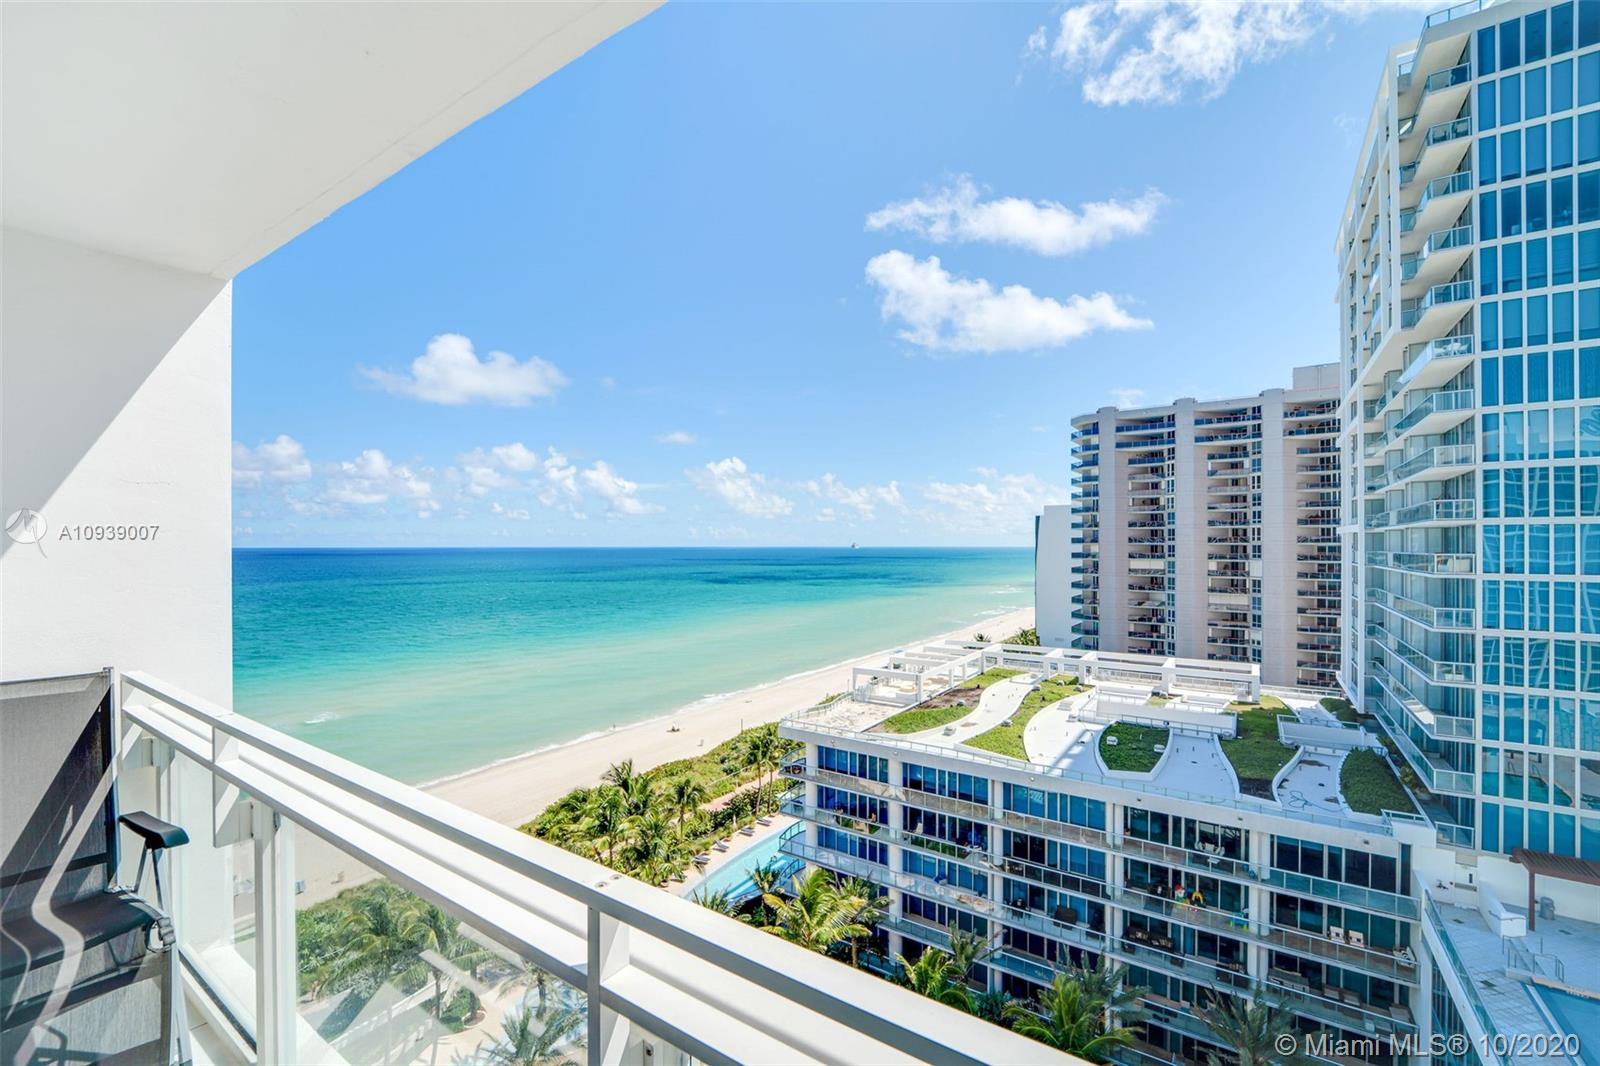 "PRICED TO SELL - Fabulous opportunity to own a beautiful ocean view unit with two balconies at Carillon Miami Wellness Resort, a premier oceanfront luxury property. Impeccably maintained unit with motorized shades, new washer + dryer, high end appliances.  Owners receive 8 spaces on POL, which is, in essence, is 8 ""memberships"" to the Carillon for unlimited use of amenities and classes all included in condo fees. Enjoy 70,000 sqft fitness spa center. Salon, 4 pools, beach service, restaurant, boutique, bar, 24hr security, wellness staff, boardwalk. Quiet neighborhood with all conveniences and restaurants in easy walking distance, including Publix across the street. Come home to your Carillon sanctuary nestled in a luxury community that focuses on optimum health, balance, and tranquility."